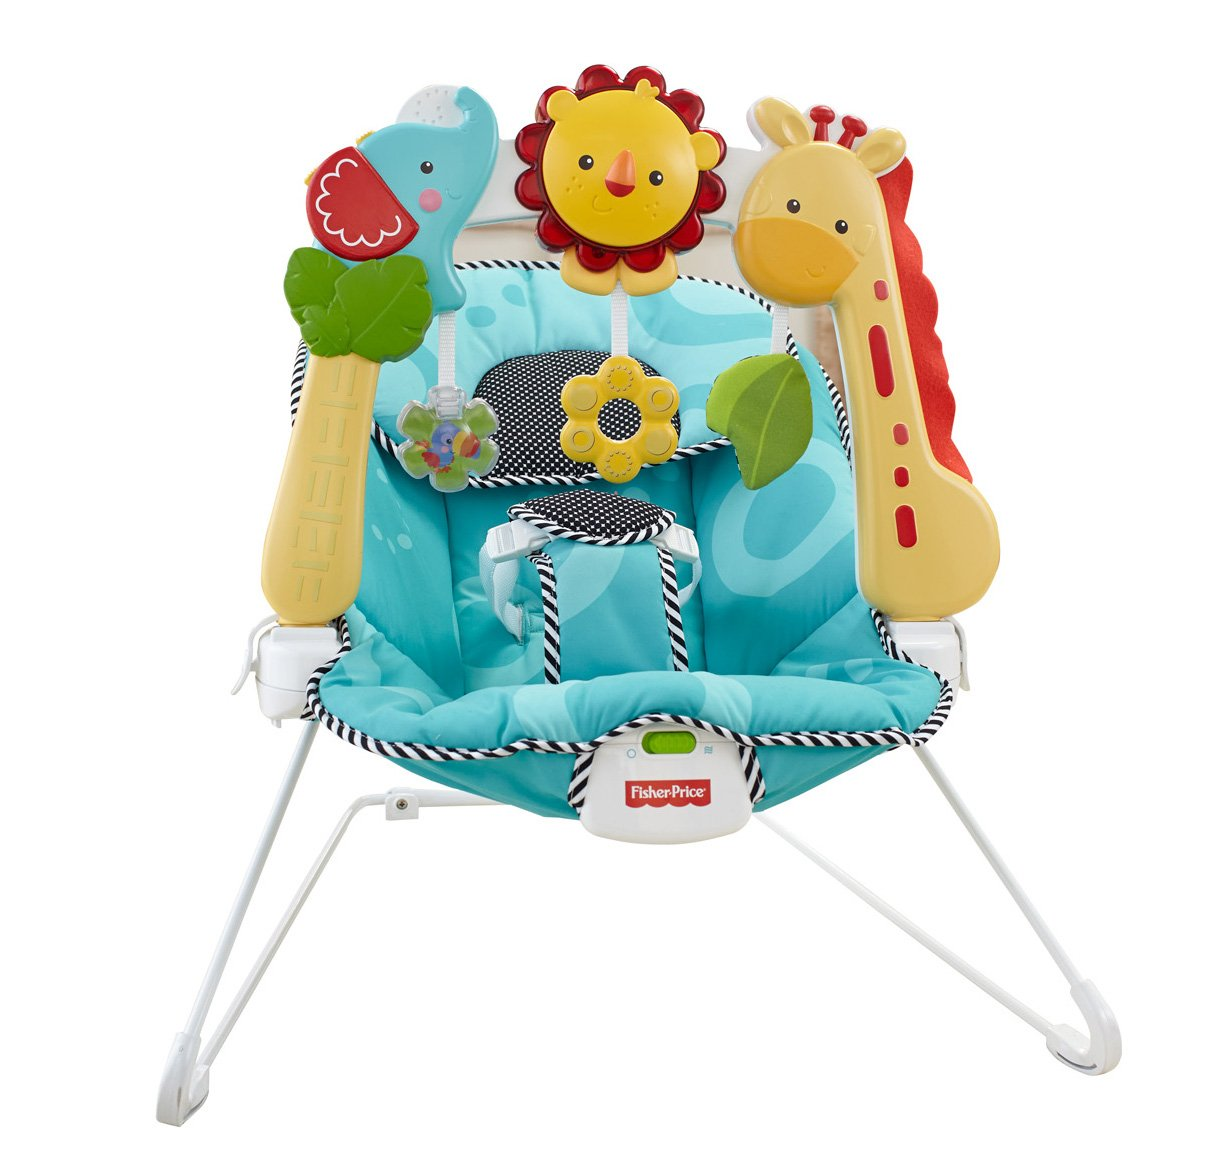 Fisher Price 2 in 1 Sensory Stages Bouncer